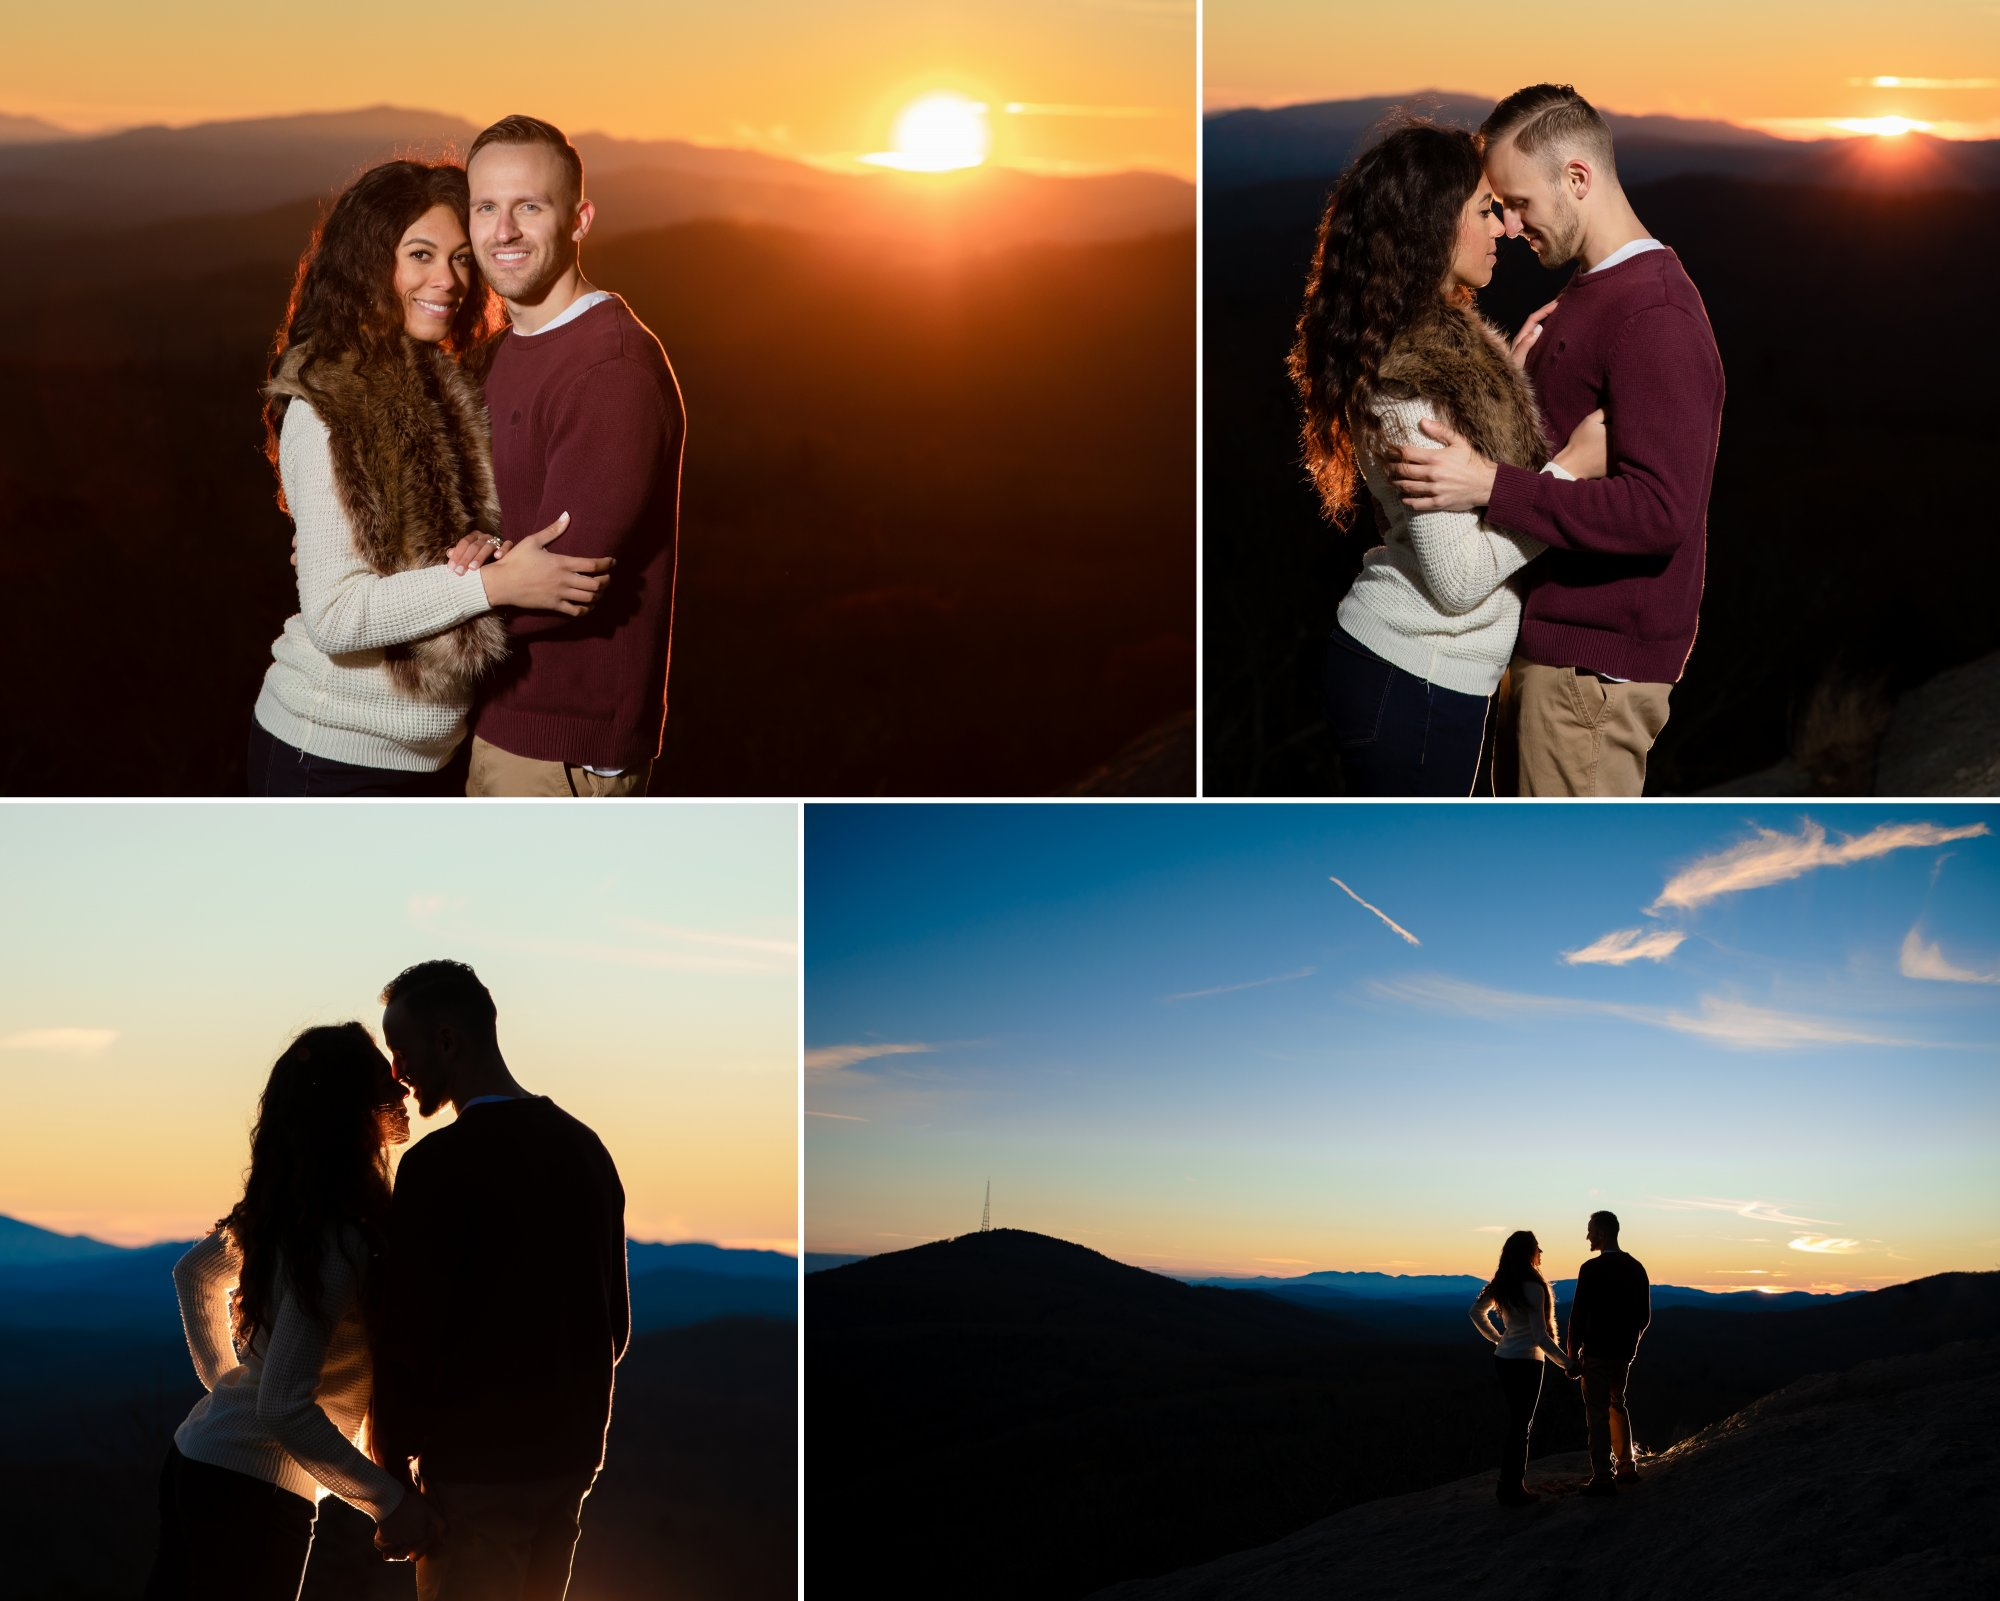 Sheri and Dom's Blue Ridge Parkway Engagement